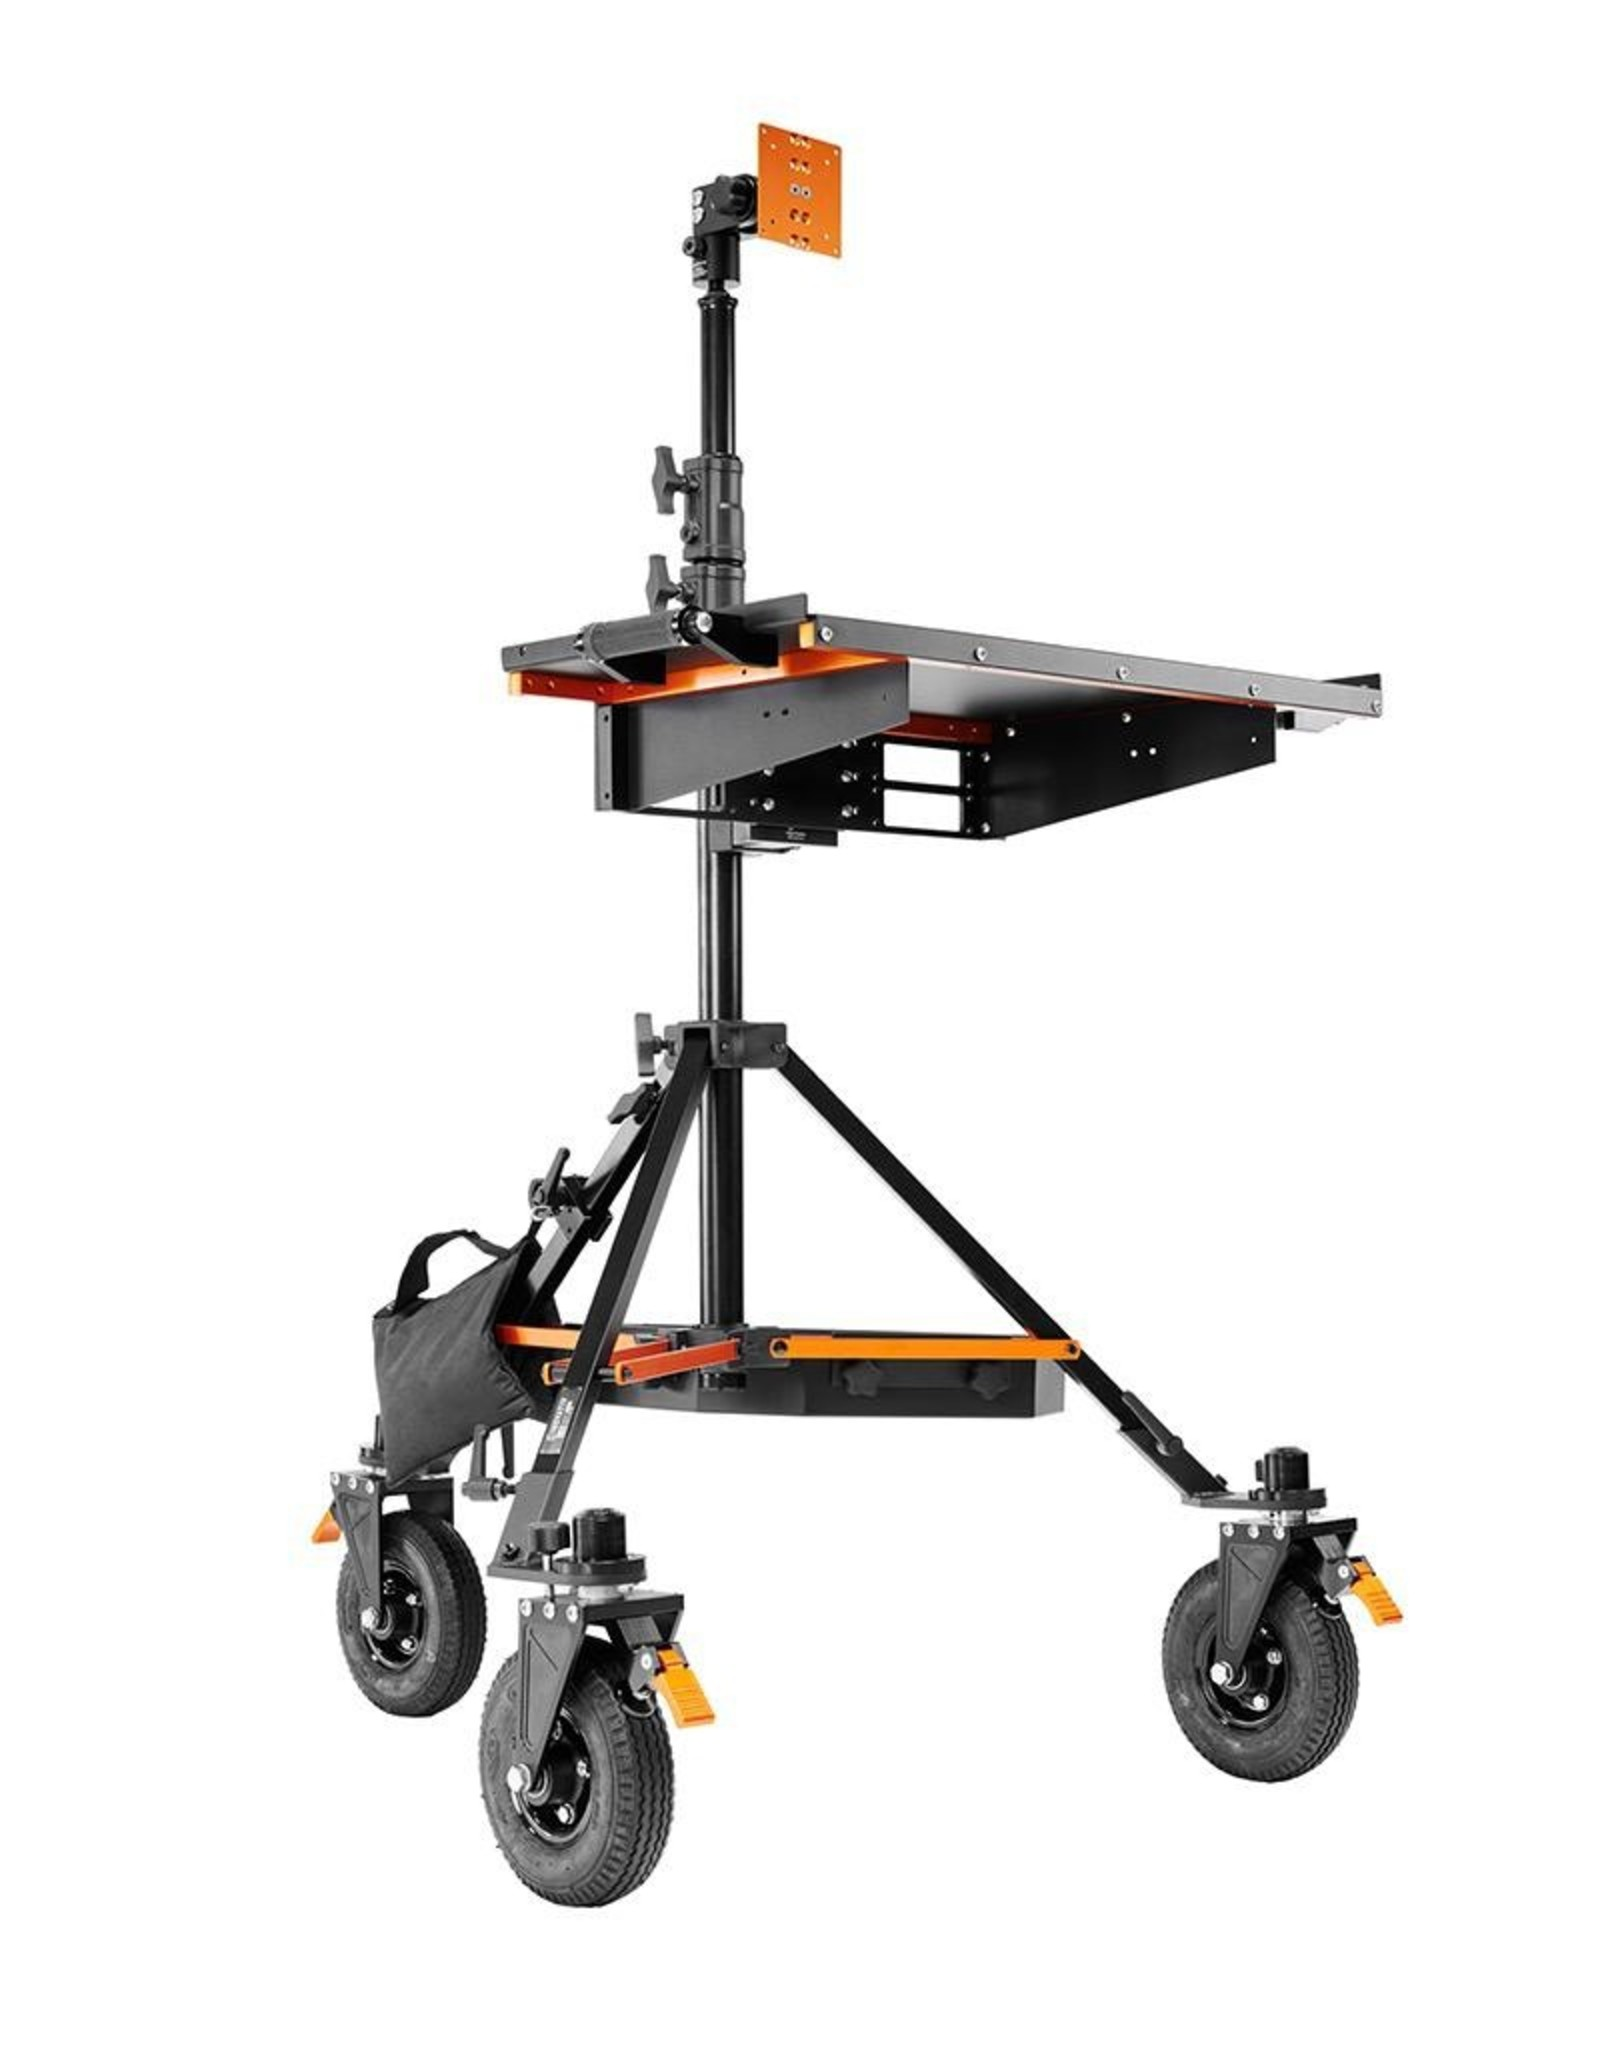 Inovativ Inovativ AXIS Base Station. Includes the AXIS Stand + Wheel System, WorkSurface Pro, Pro Monitor Mount, Trough and Weight Hanger + 25lb Weight Bag.